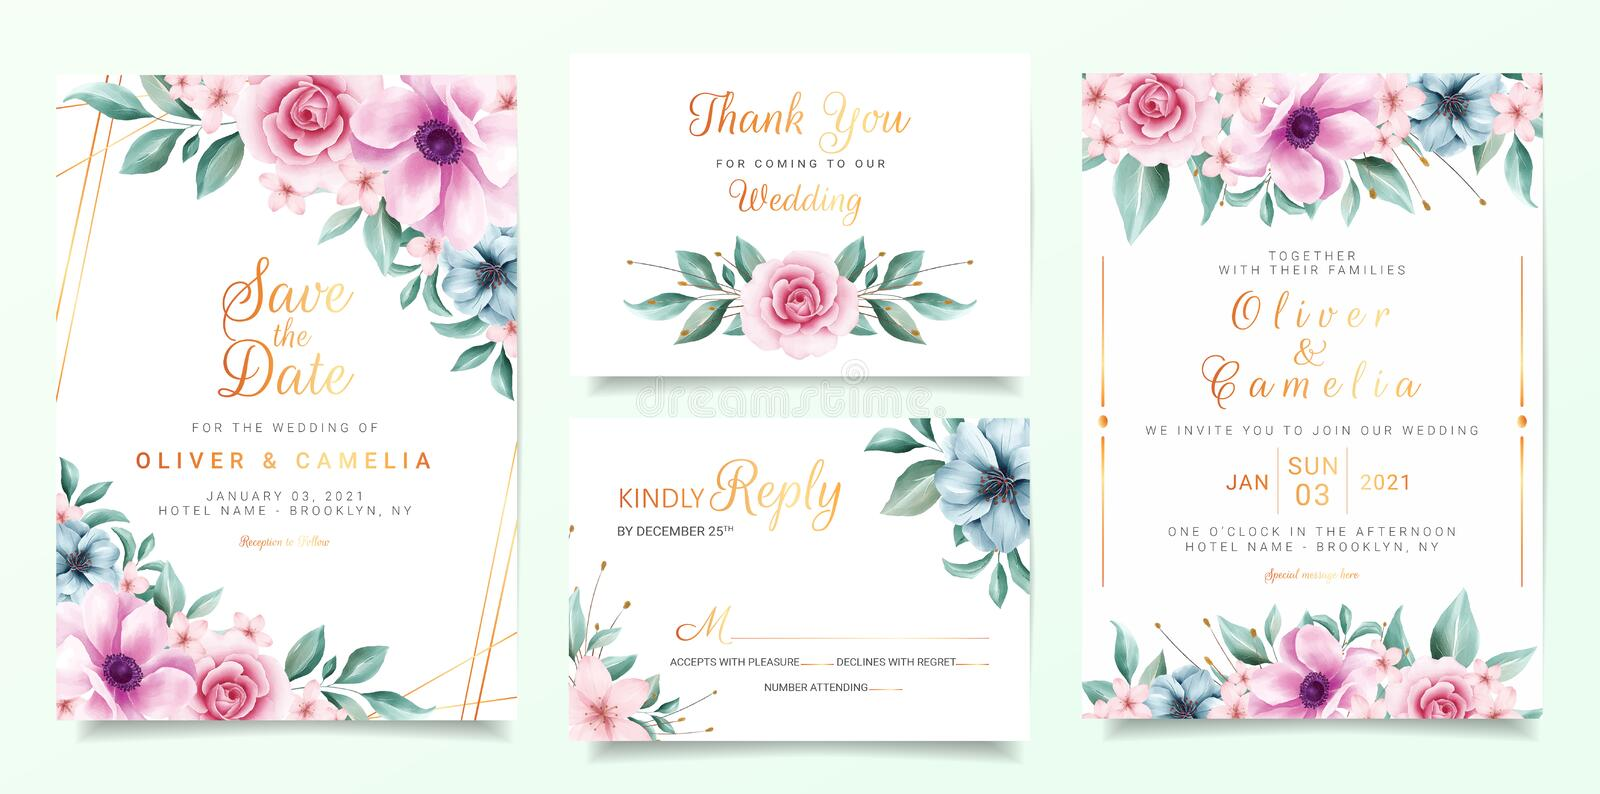 Beautiful wedding invitation card template set with colorful flowers border and gold decoration Purple and peach roses flowers 皇族释放例证